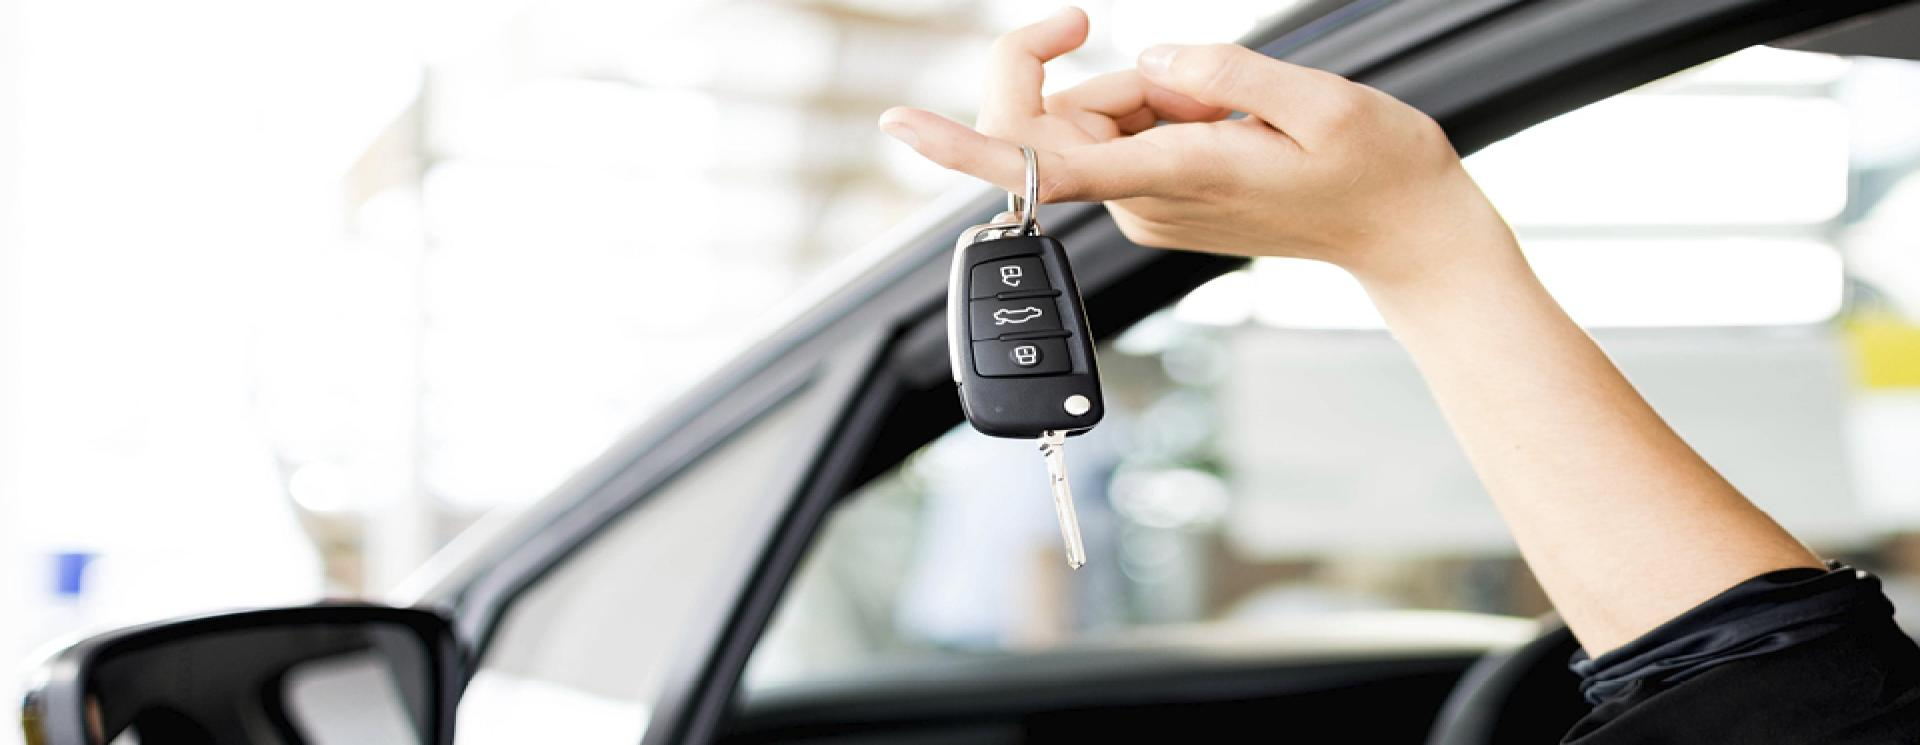 Car hire key